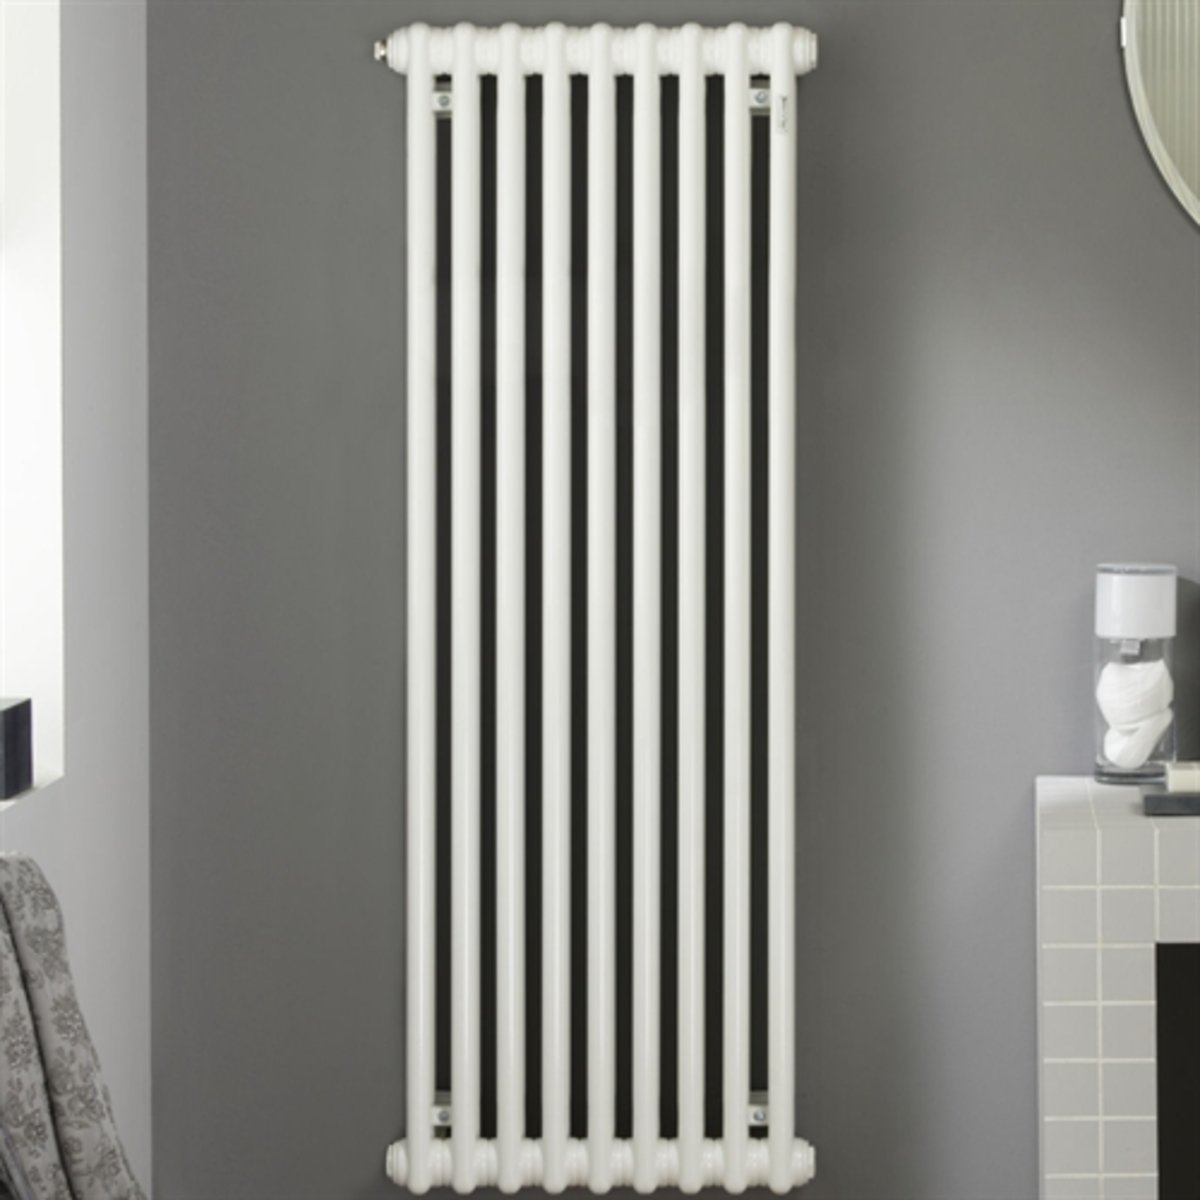 zehnder charleston radiateur vertical 720w blanc fin de s rie 41504. Black Bedroom Furniture Sets. Home Design Ideas